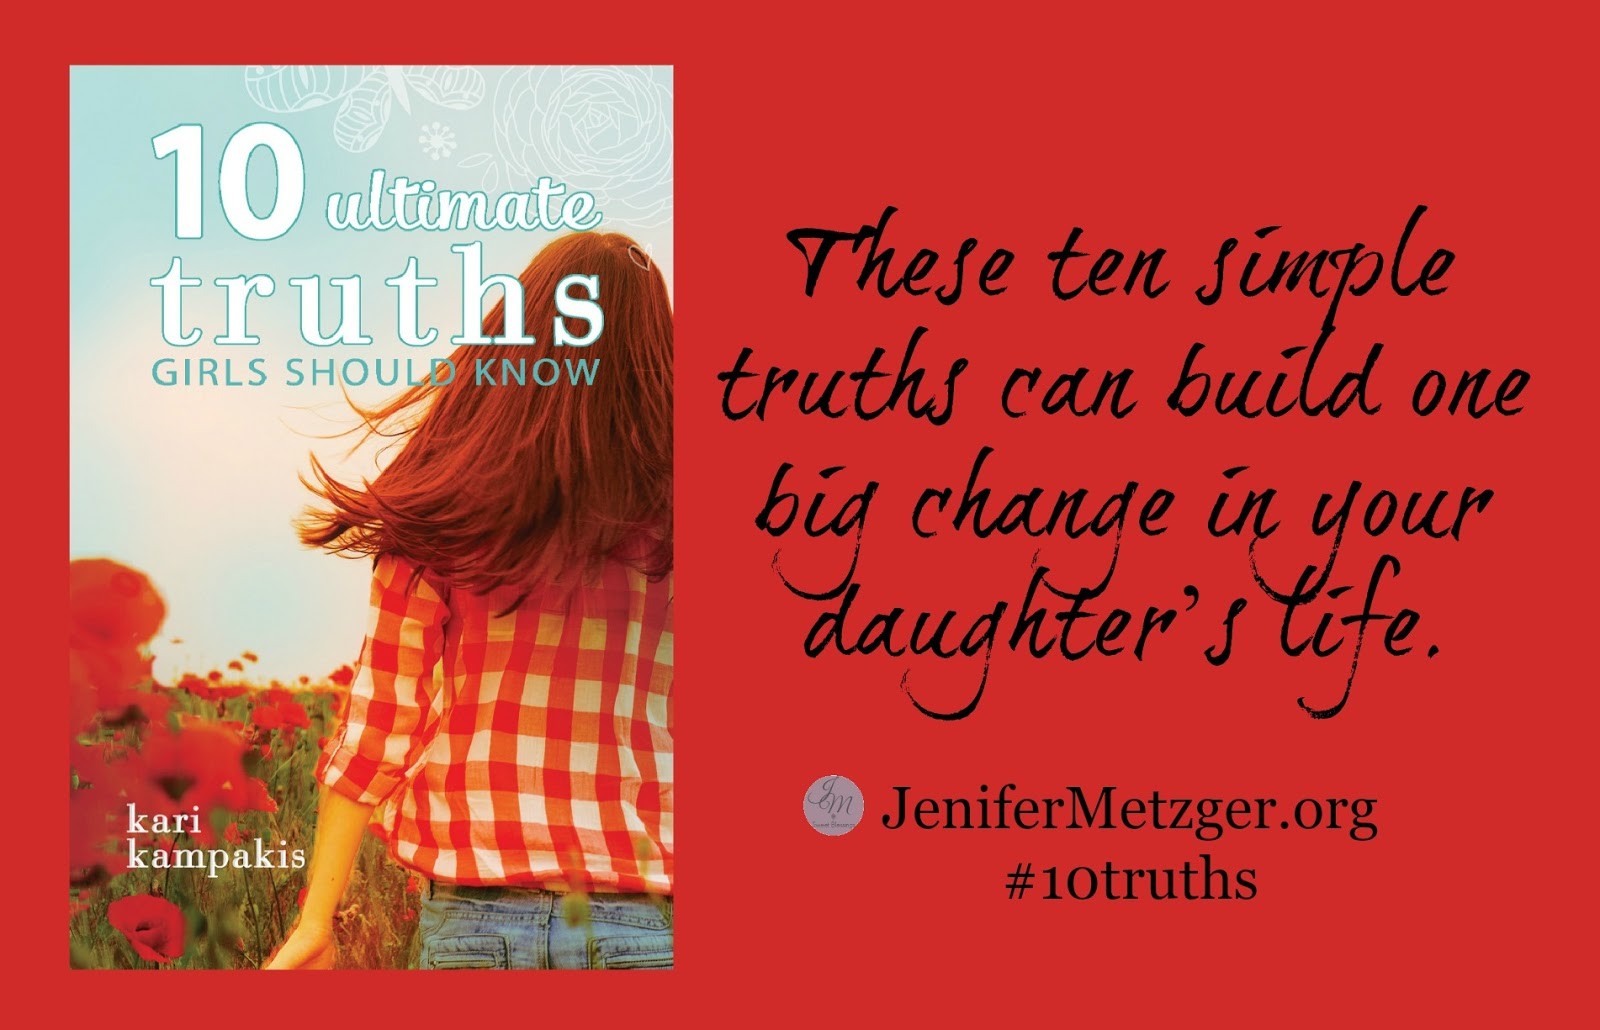 These ten simple truths can build one big change in your daughter's life. #10truths #teenagegirl #parenting #daughter